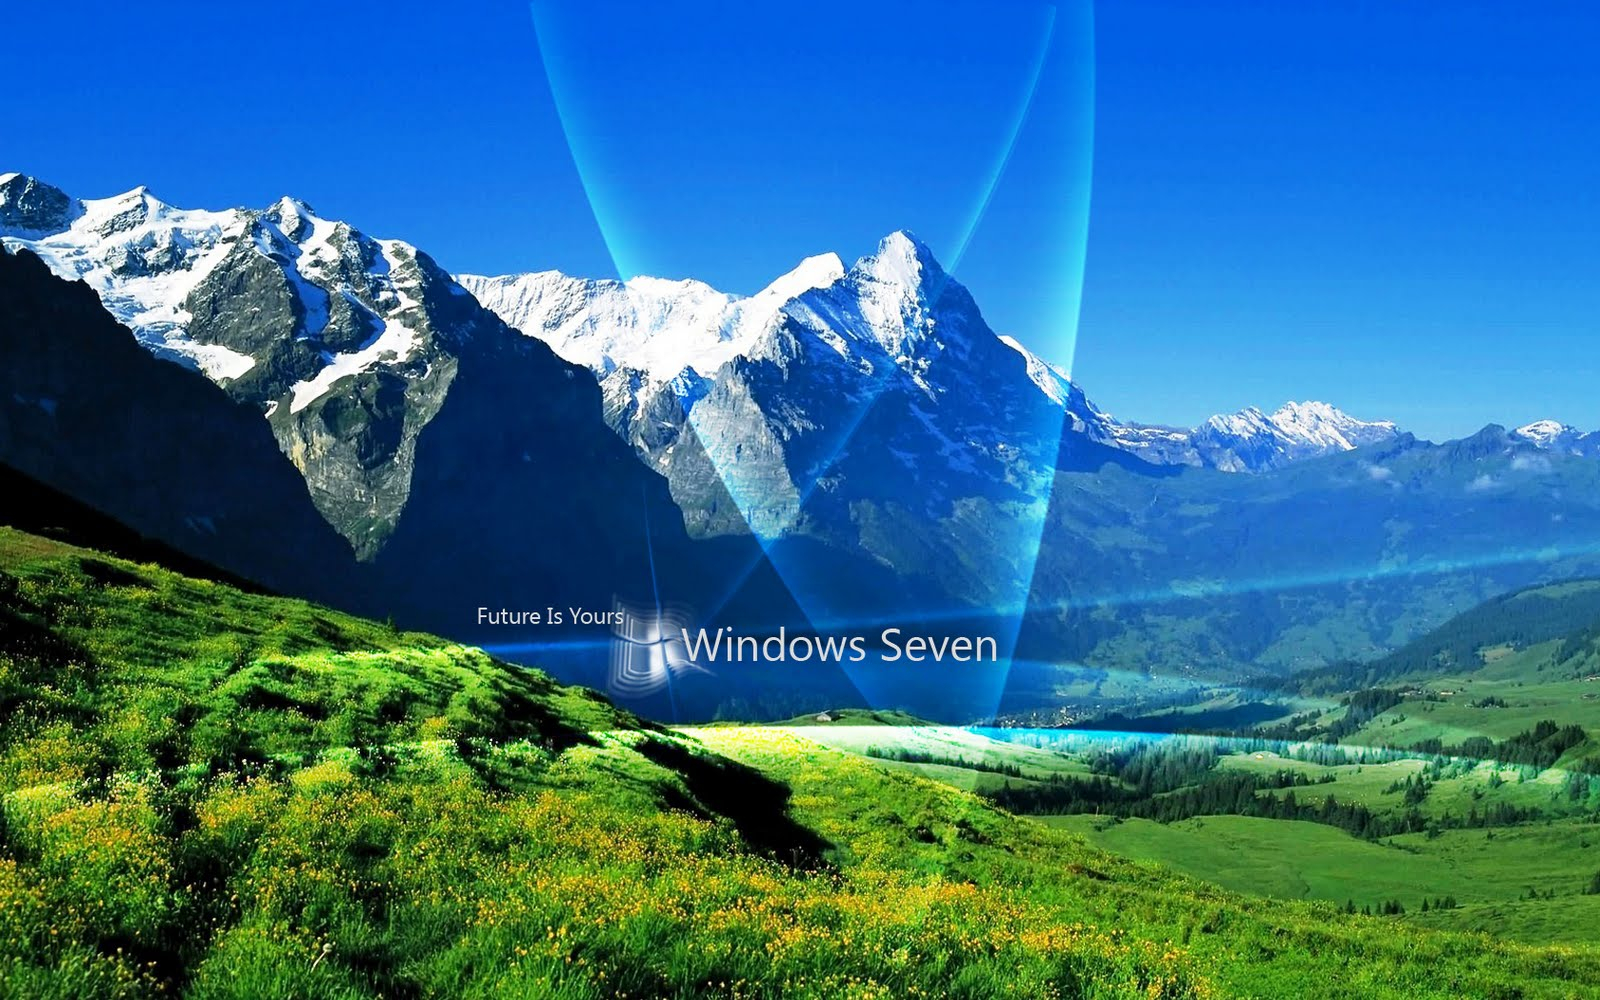 Panoramic Wallpaper of Windows 7 Images Gallery 1600x1000